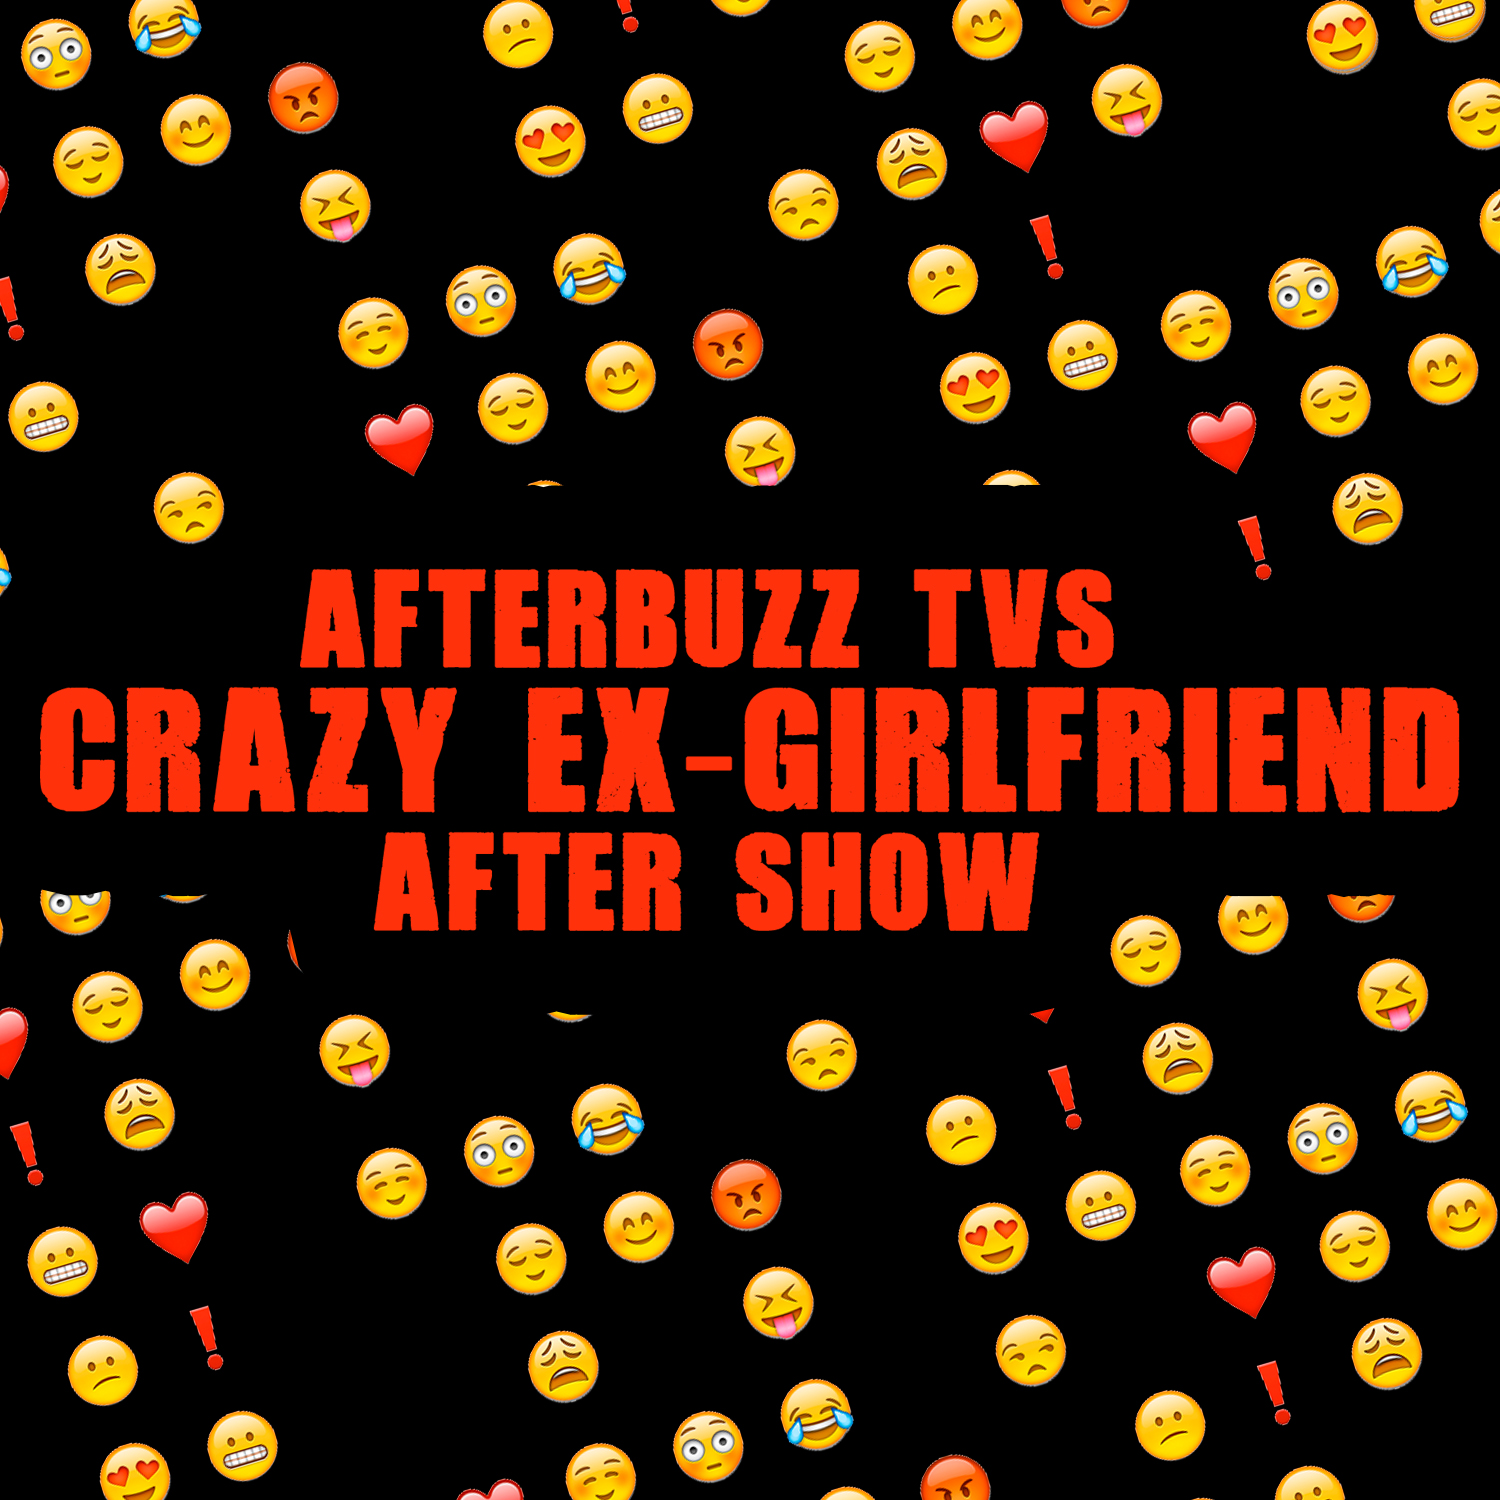 Crazy Ex-Girlfriend After Show